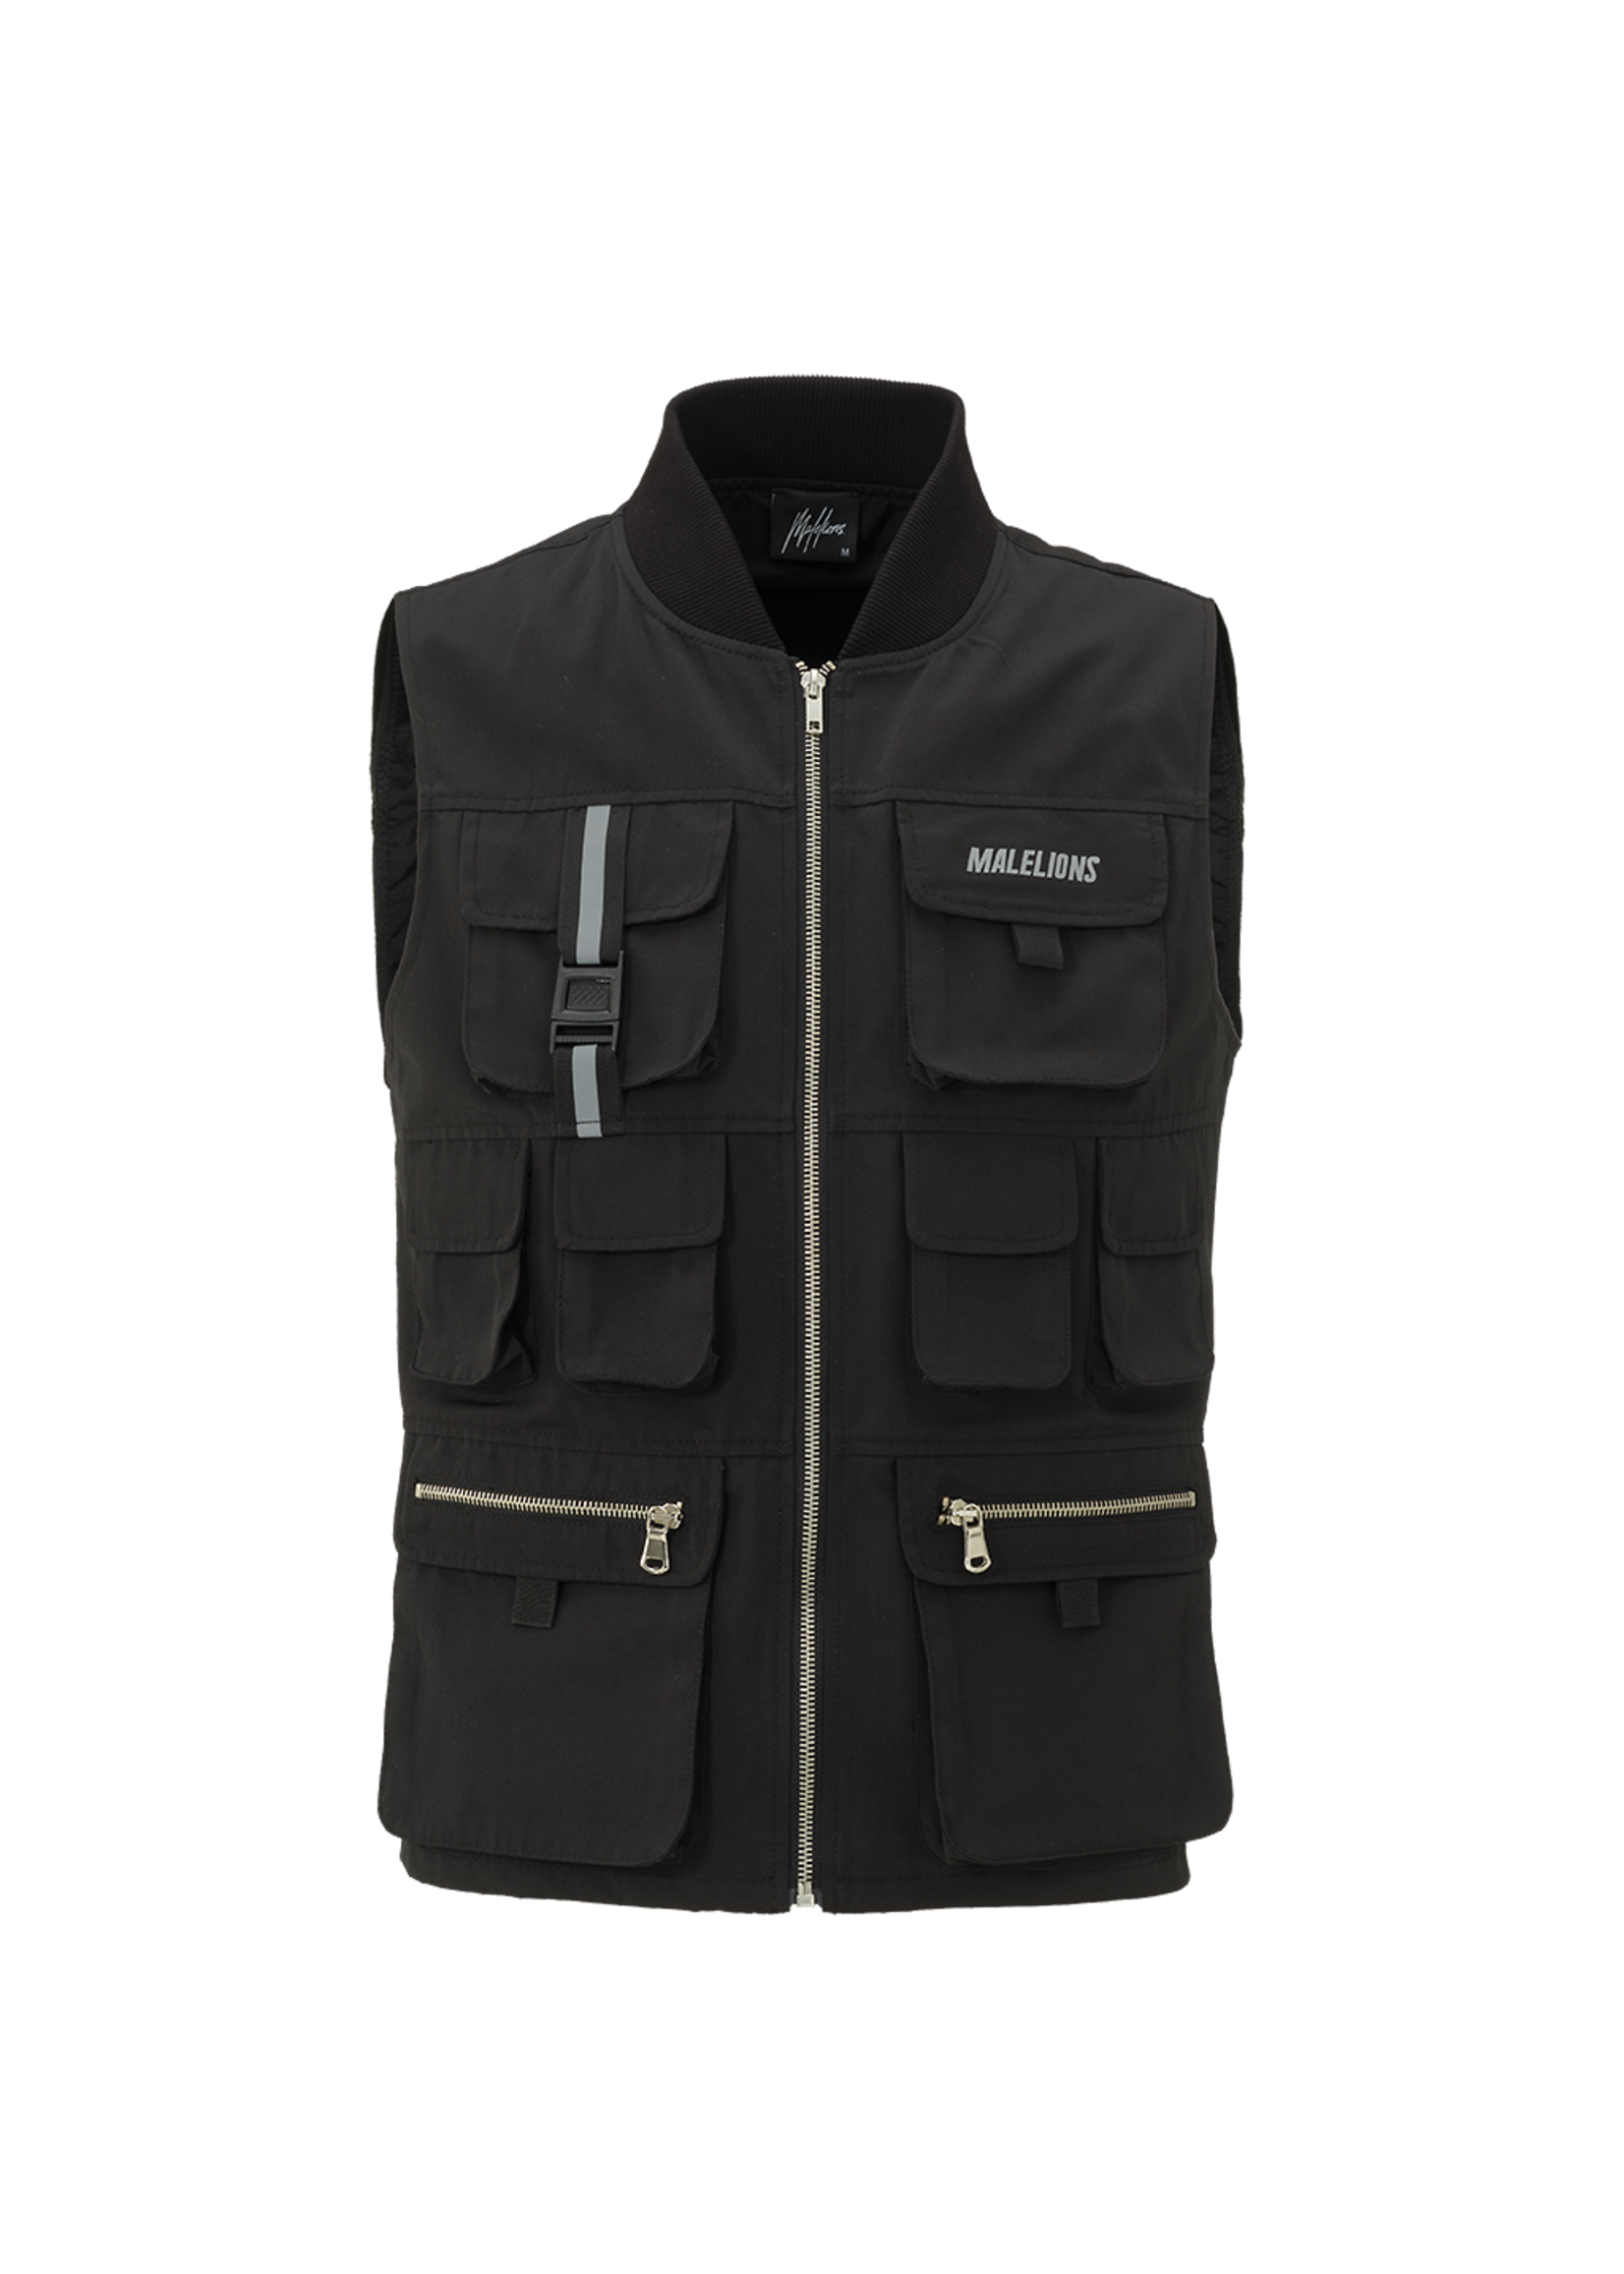 Malelions Malelions Tactical Reflective Vest - Black